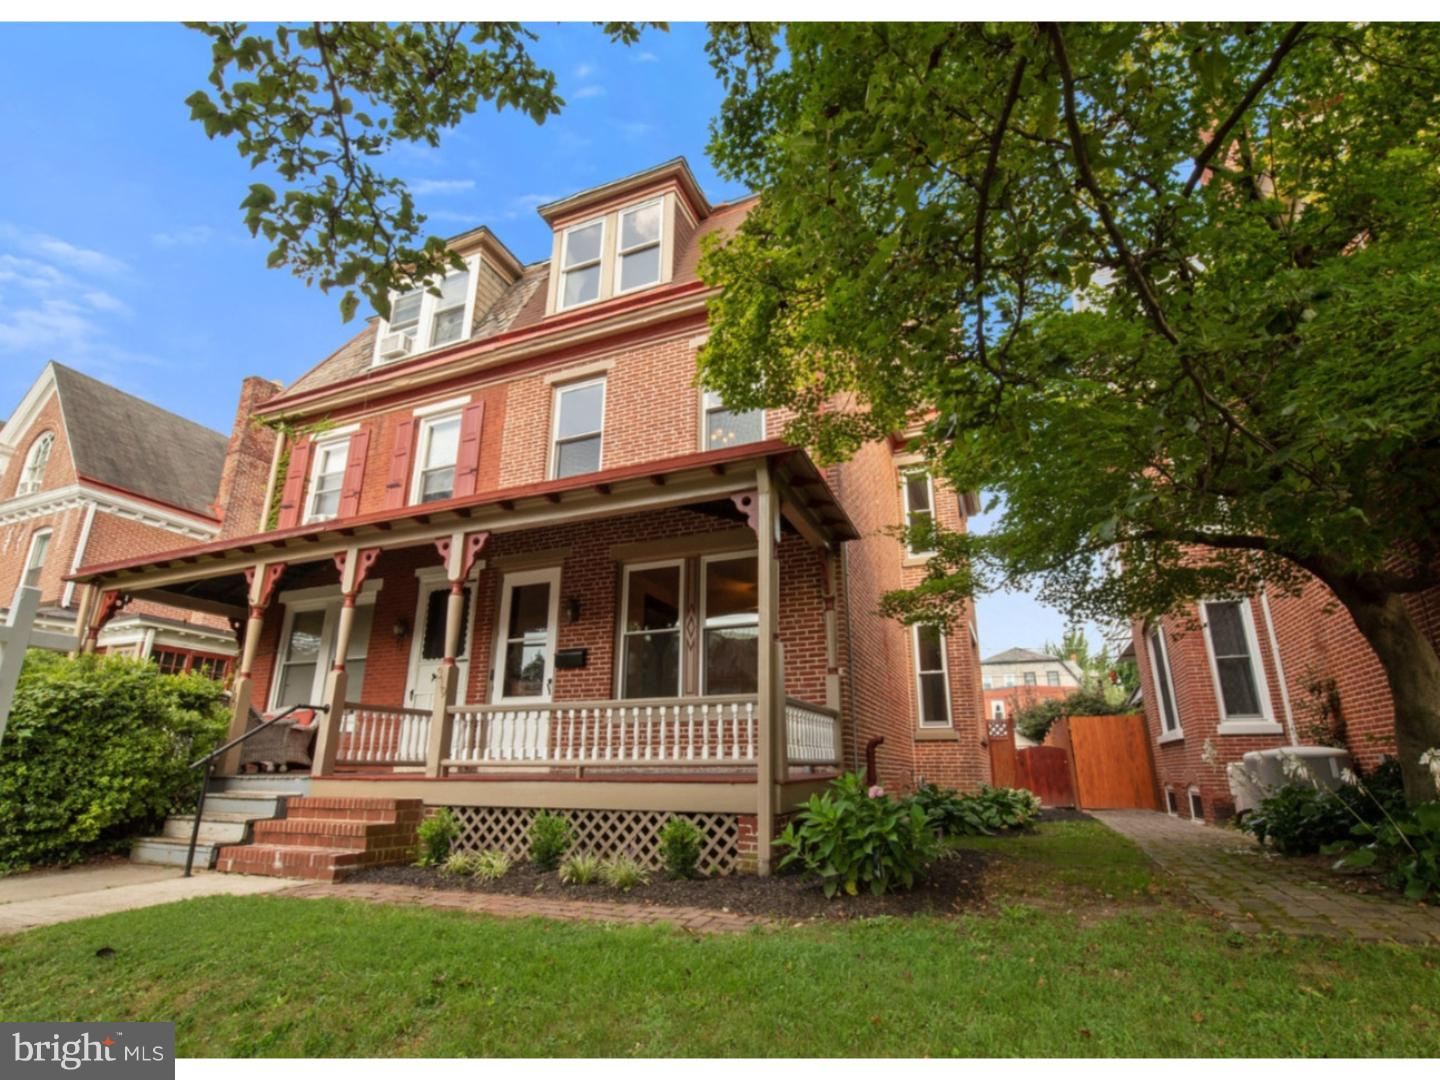 319 W Union Street West Chester, PA 19382